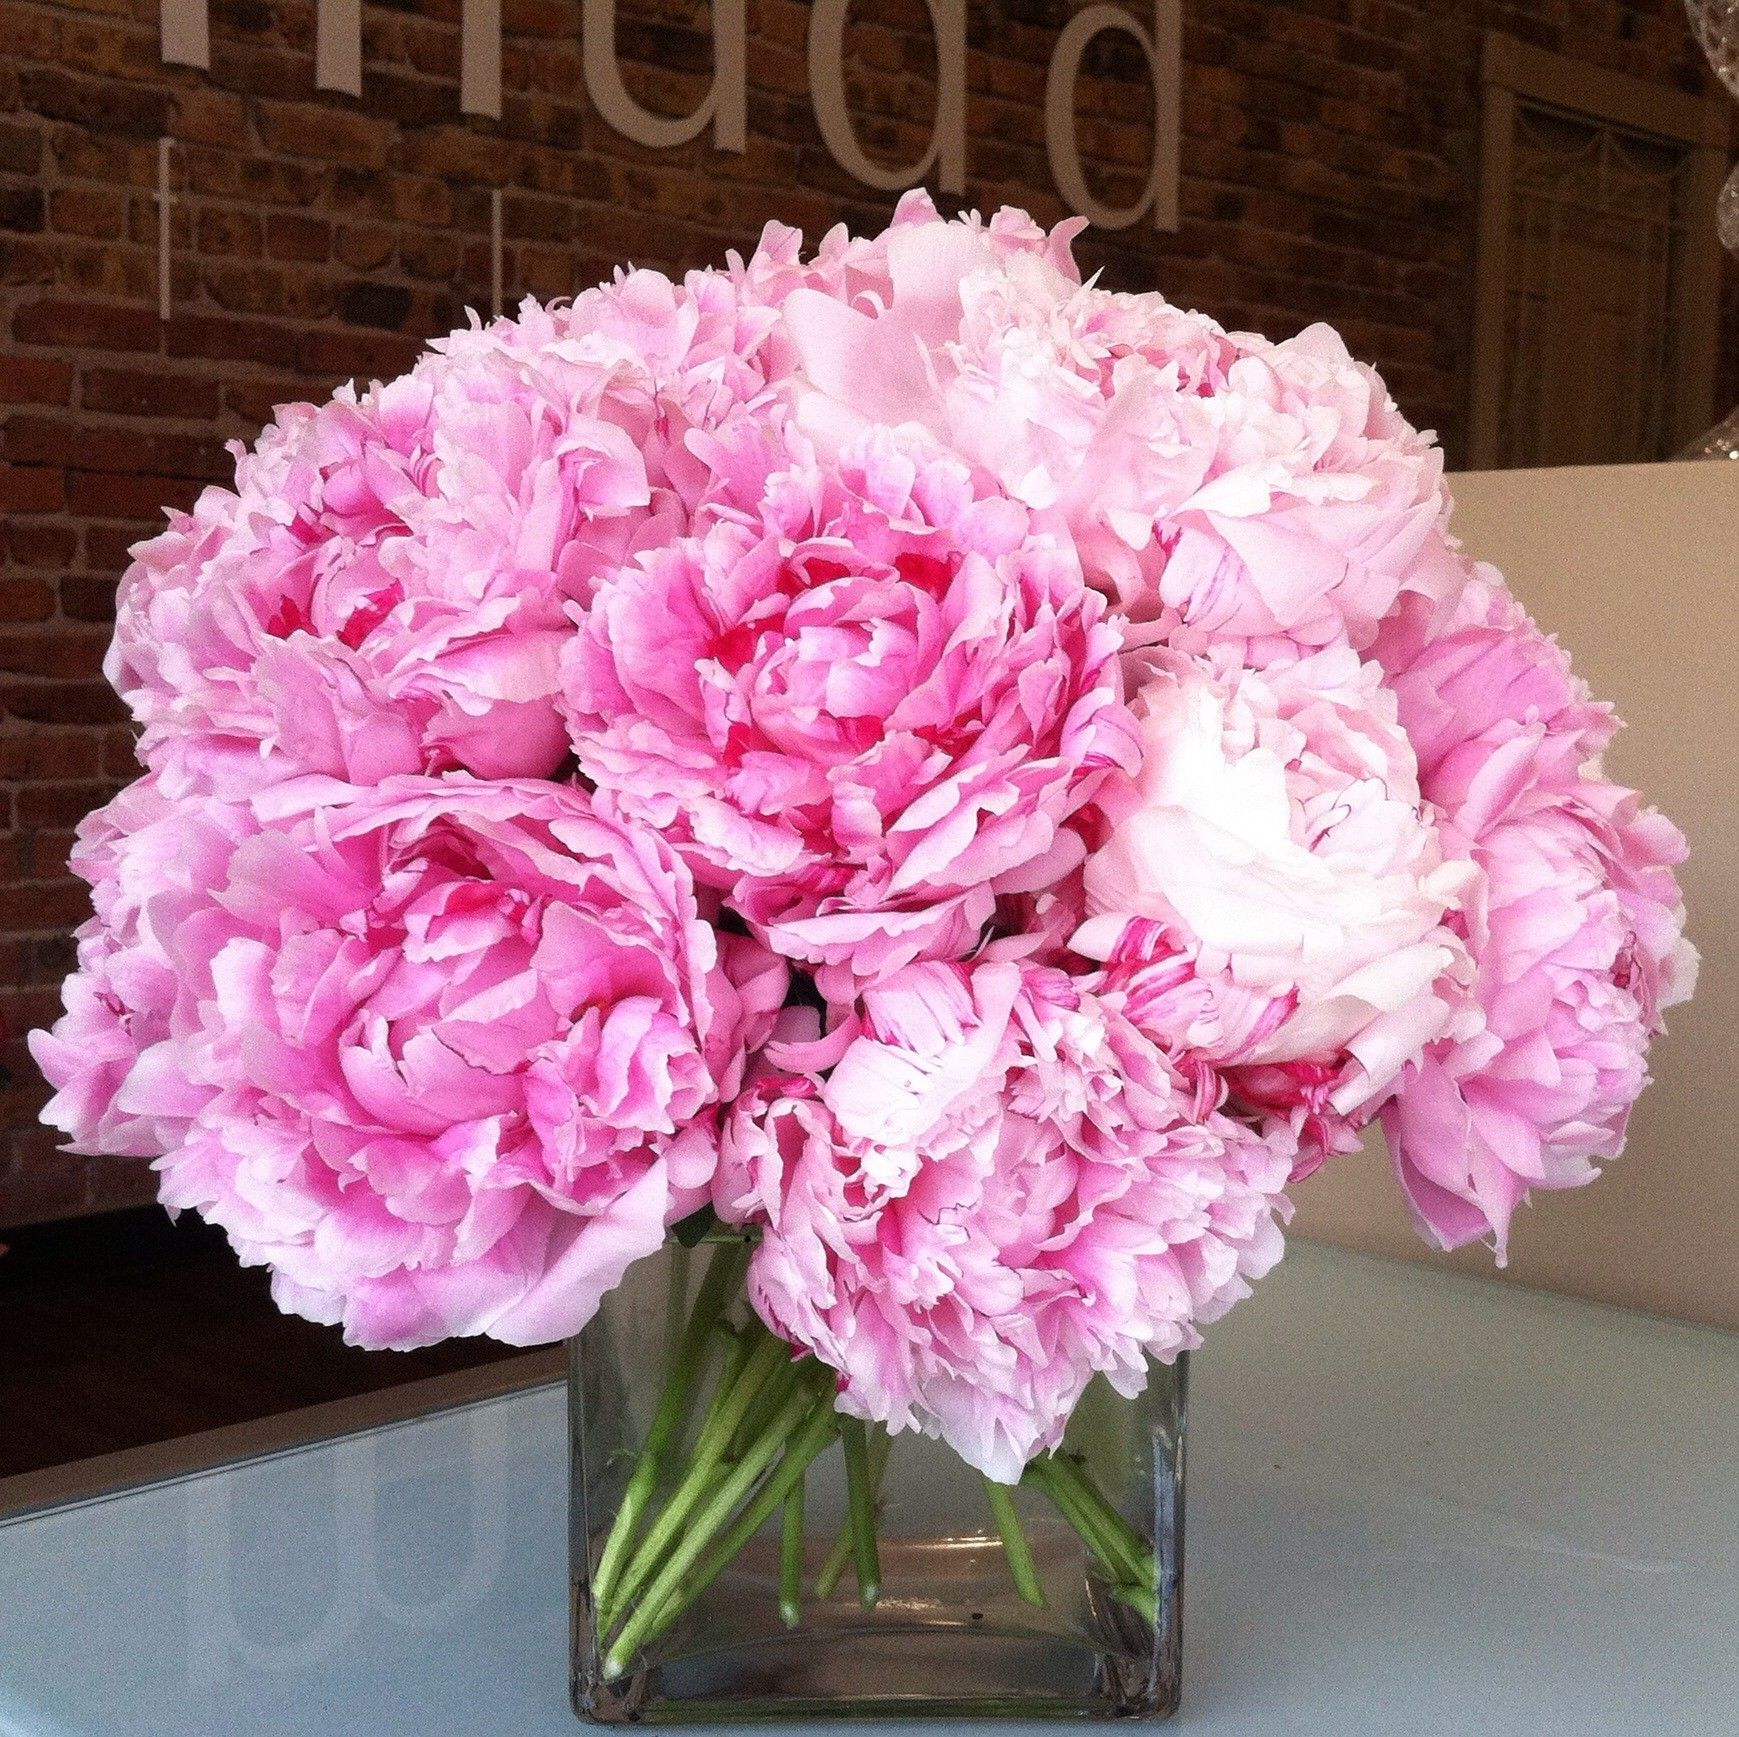 Pin by Kt R on Bridal Shower Flower delivery, Flowers